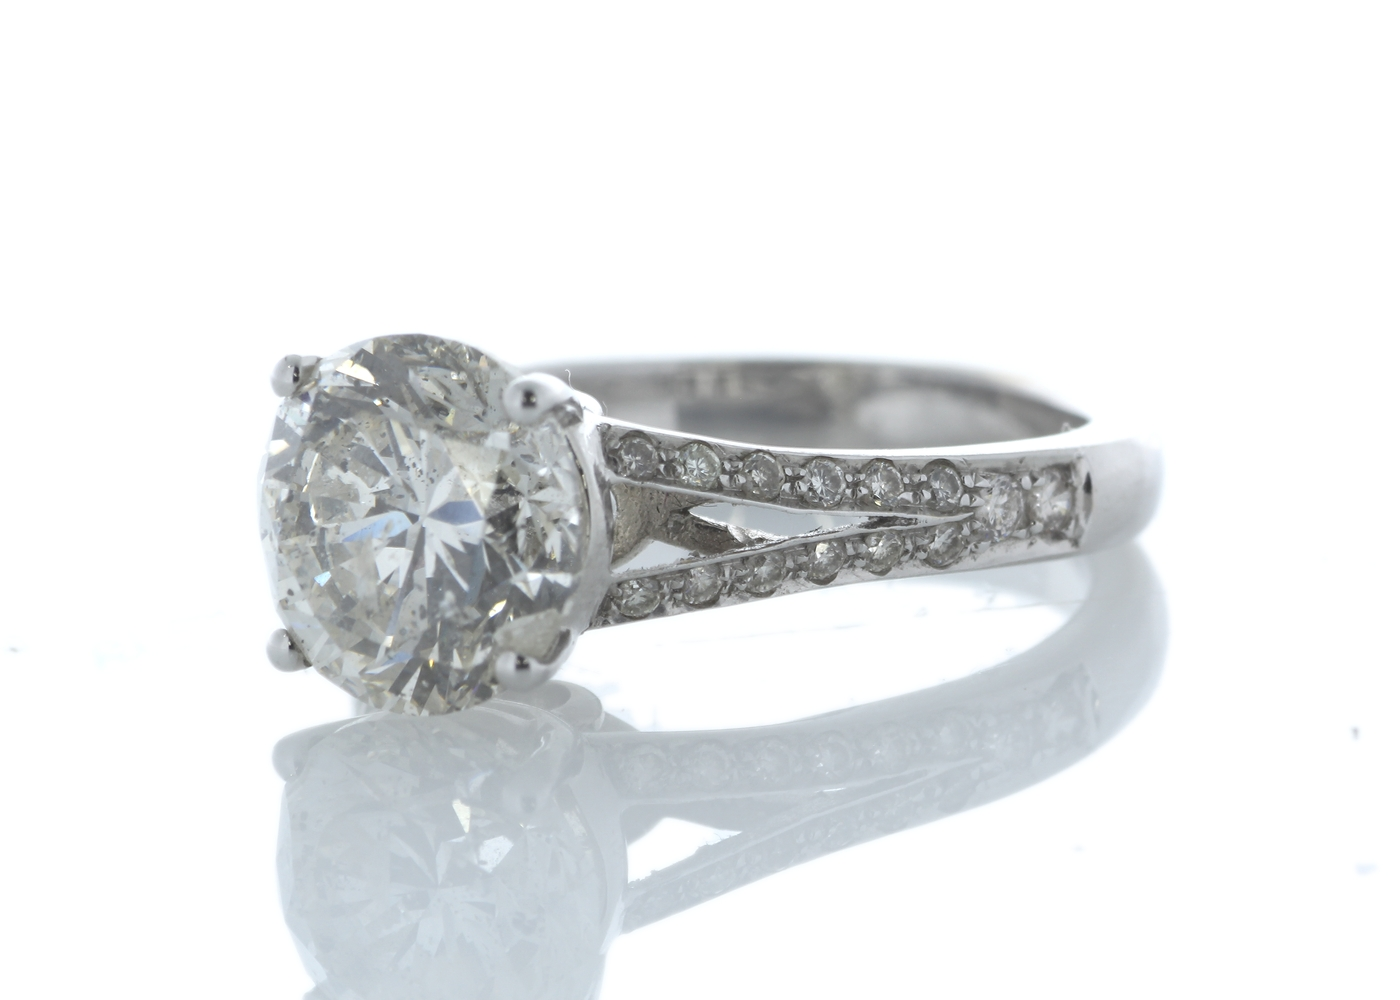 18ct White Gold Single Stone Prong Set With Stone Set Shoulders Diamond Ring 3.56 Carats - Image 2 of 4